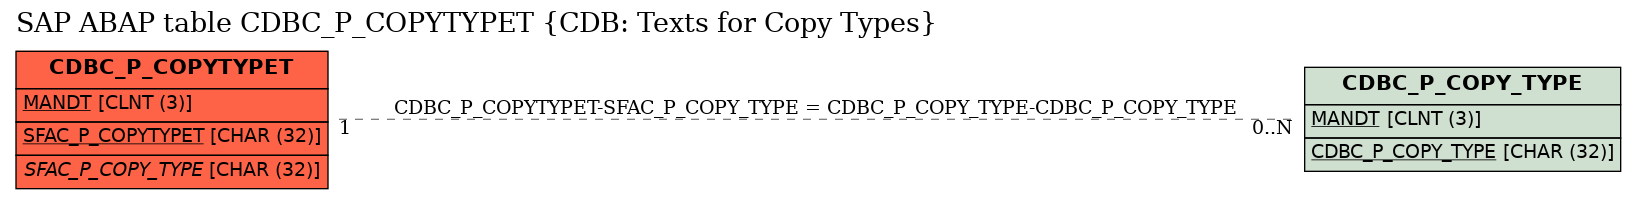 E-R Diagram for table CDBC_P_COPYTYPET (CDB: Texts for Copy Types)